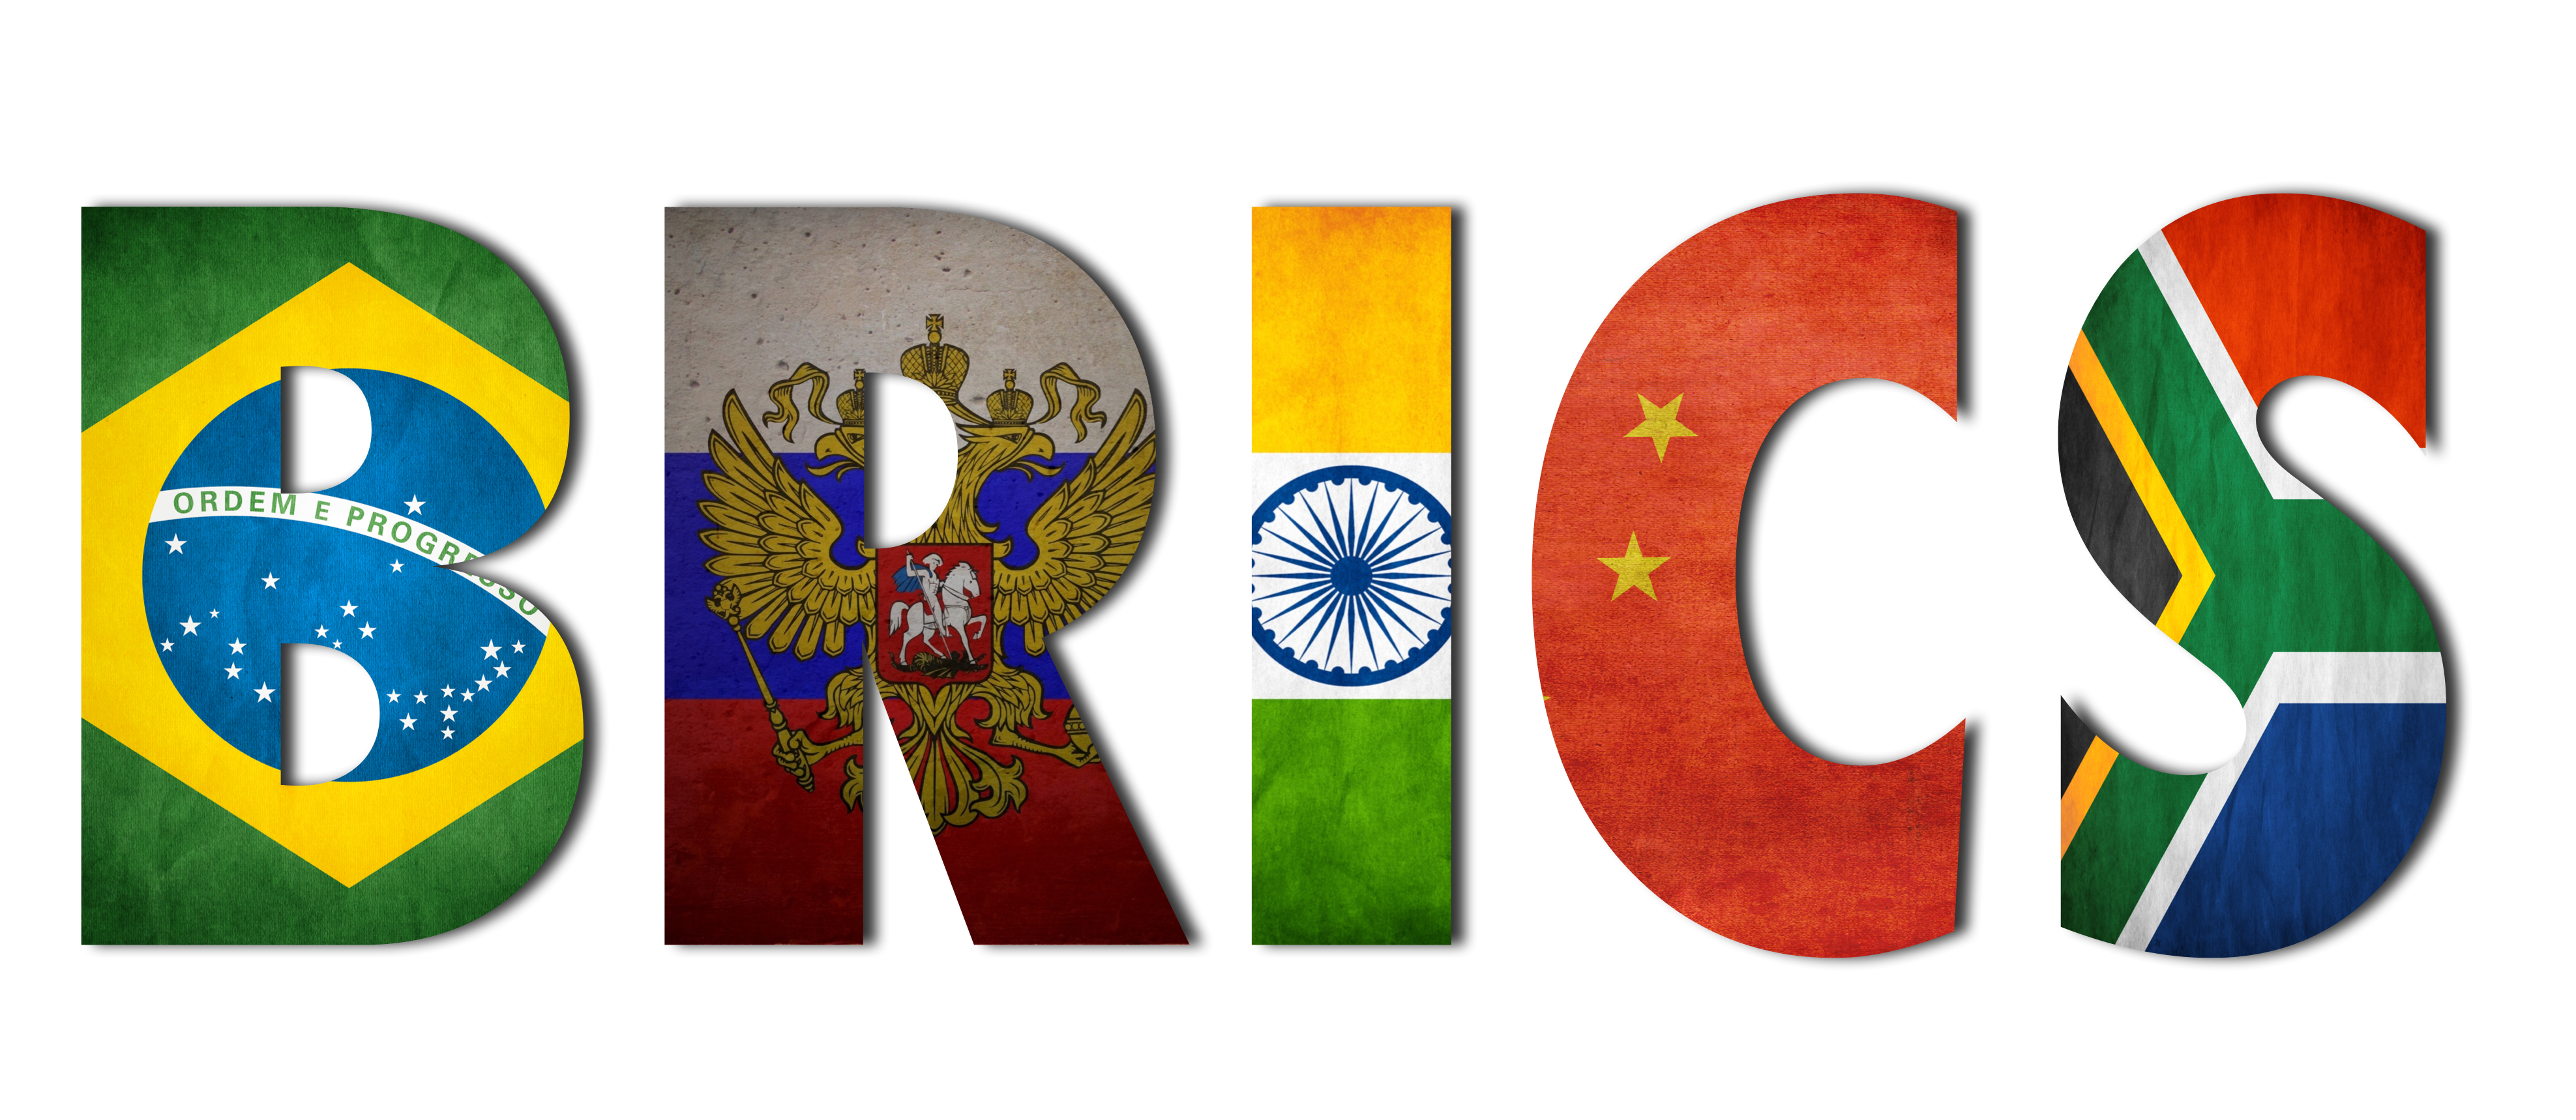 http://www.globalresearch.ca/wp-content/uploads/2014/07/BRICS-2014.png